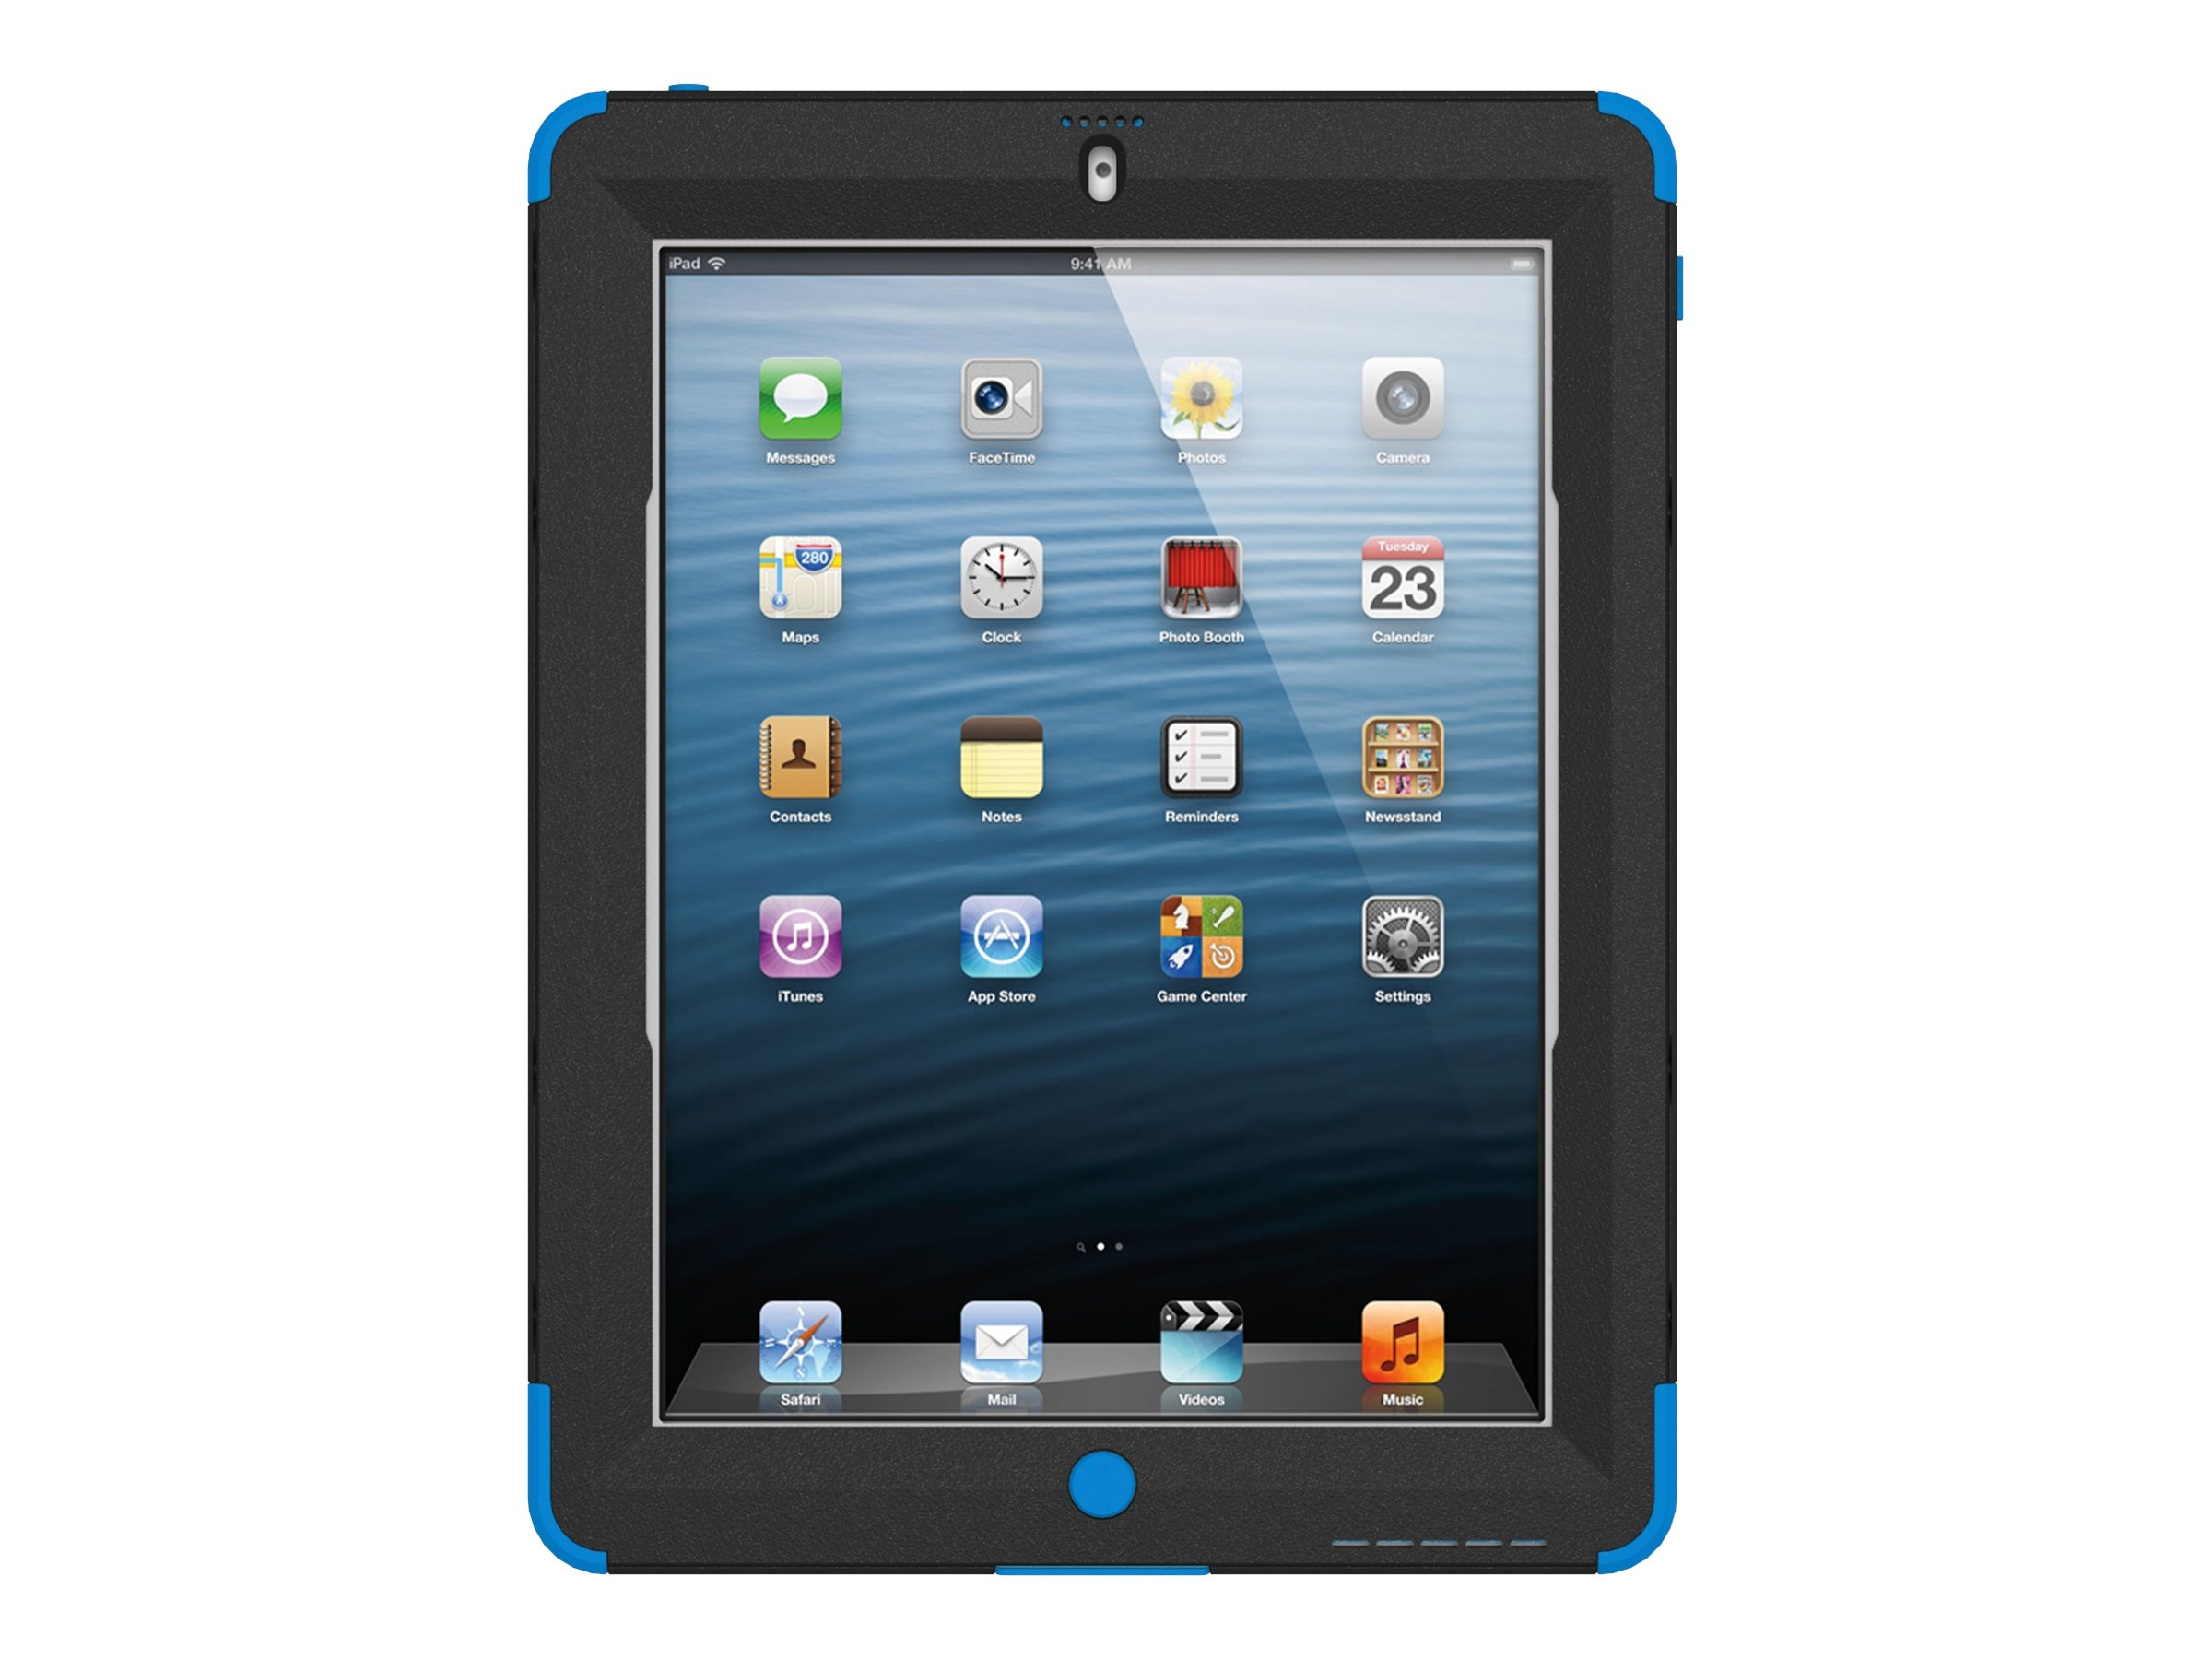 Targus Rugged Max Pro Safeport Case for iPad 3 4, Blue, THD04402US, 15397258, Carrying Cases - Tablets & eReaders